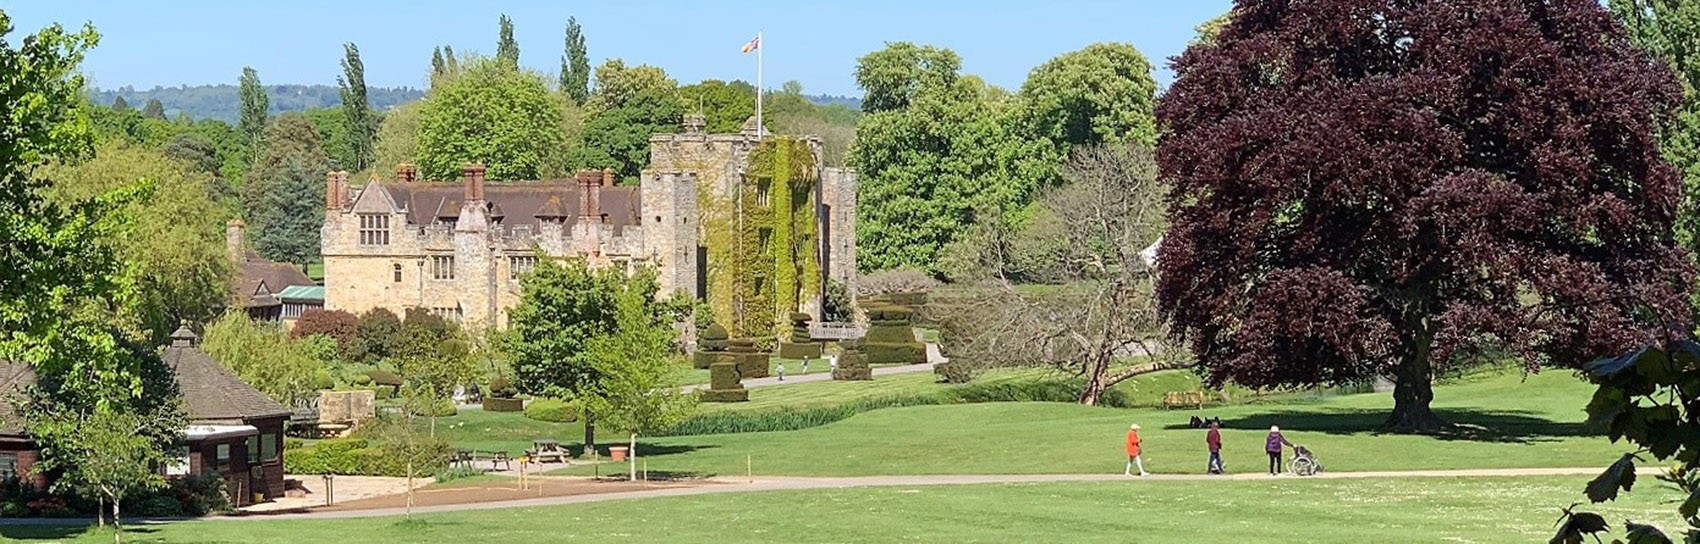 Hever Castle. Photograph by DAWN BLEE